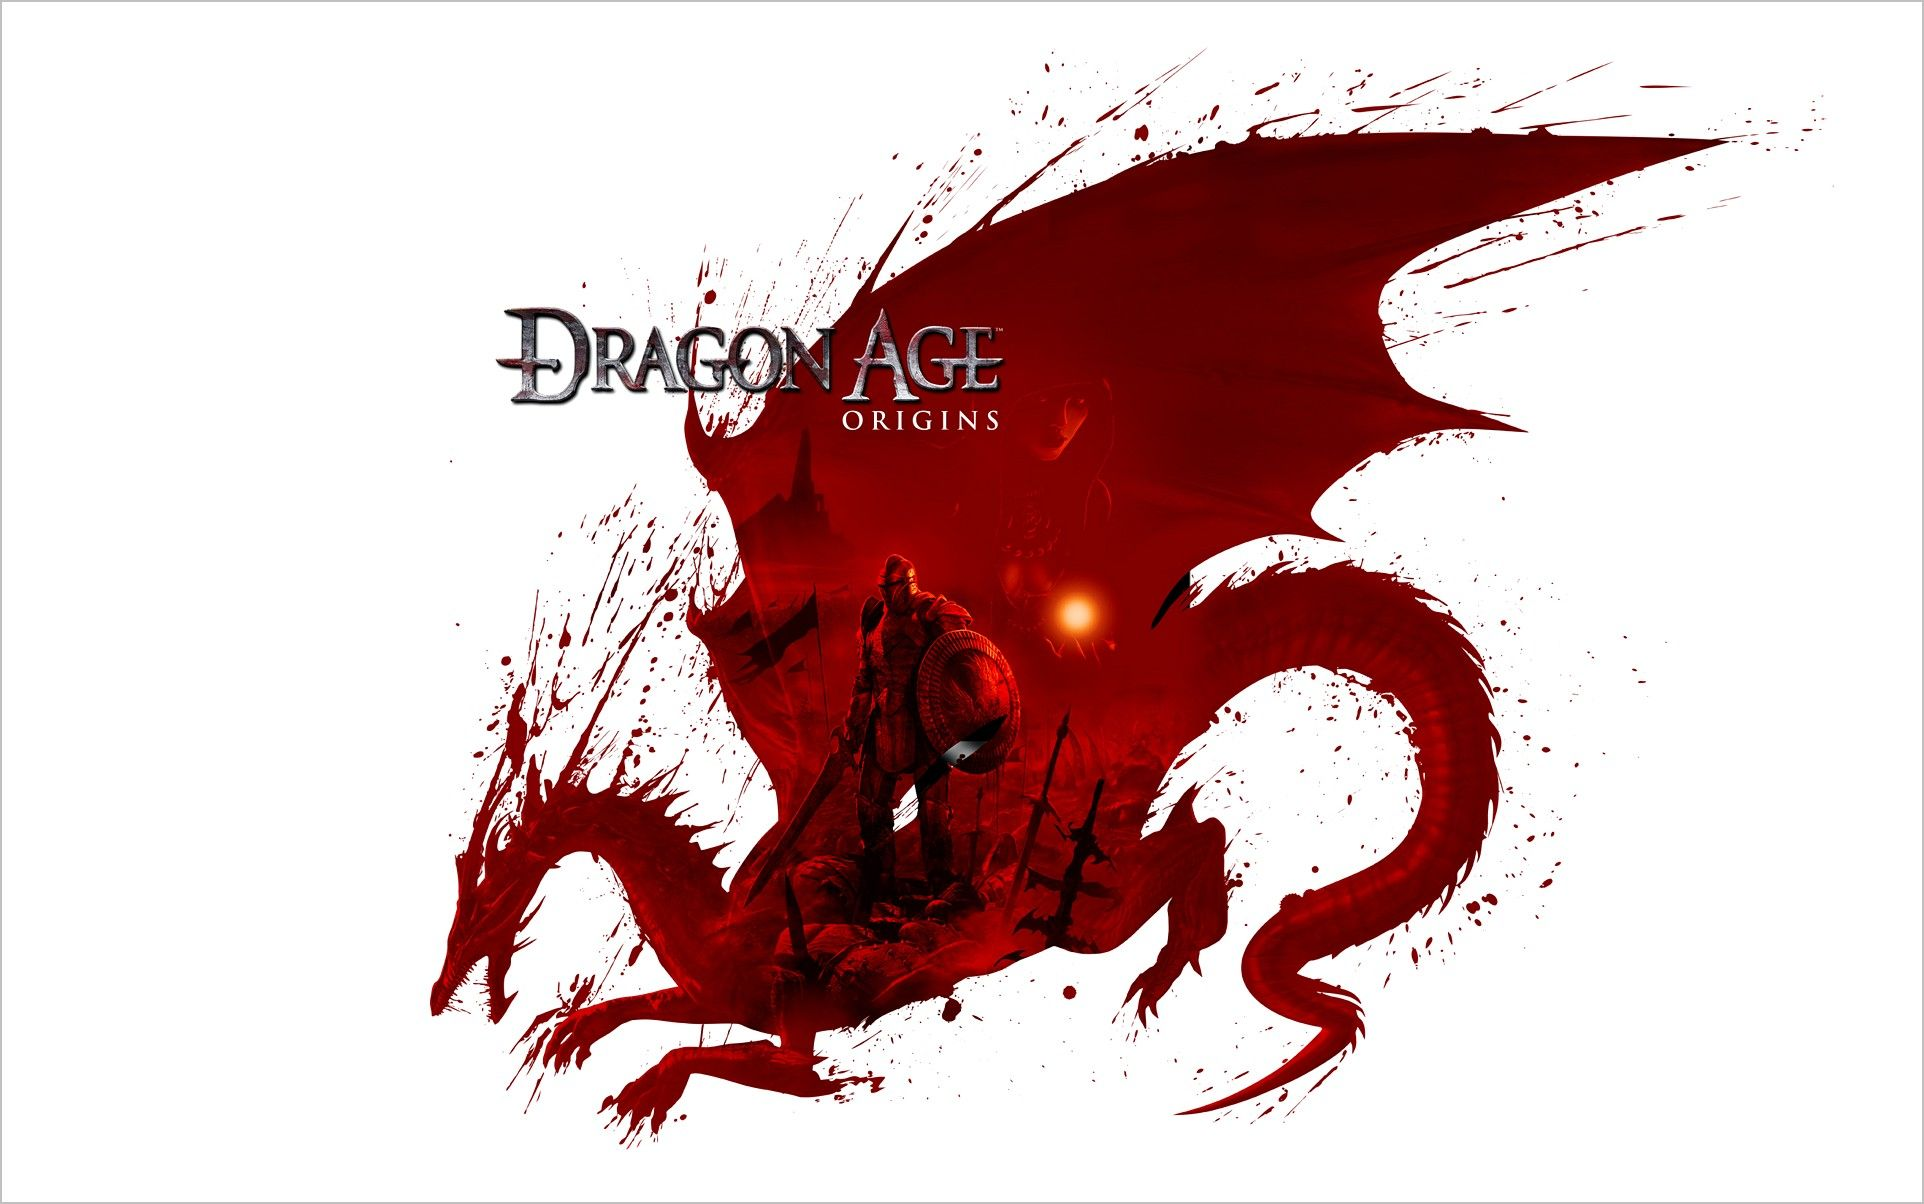 Dragon Age Origins 4k Wallpaper Dragon Age Origins Dragon Age Dragon